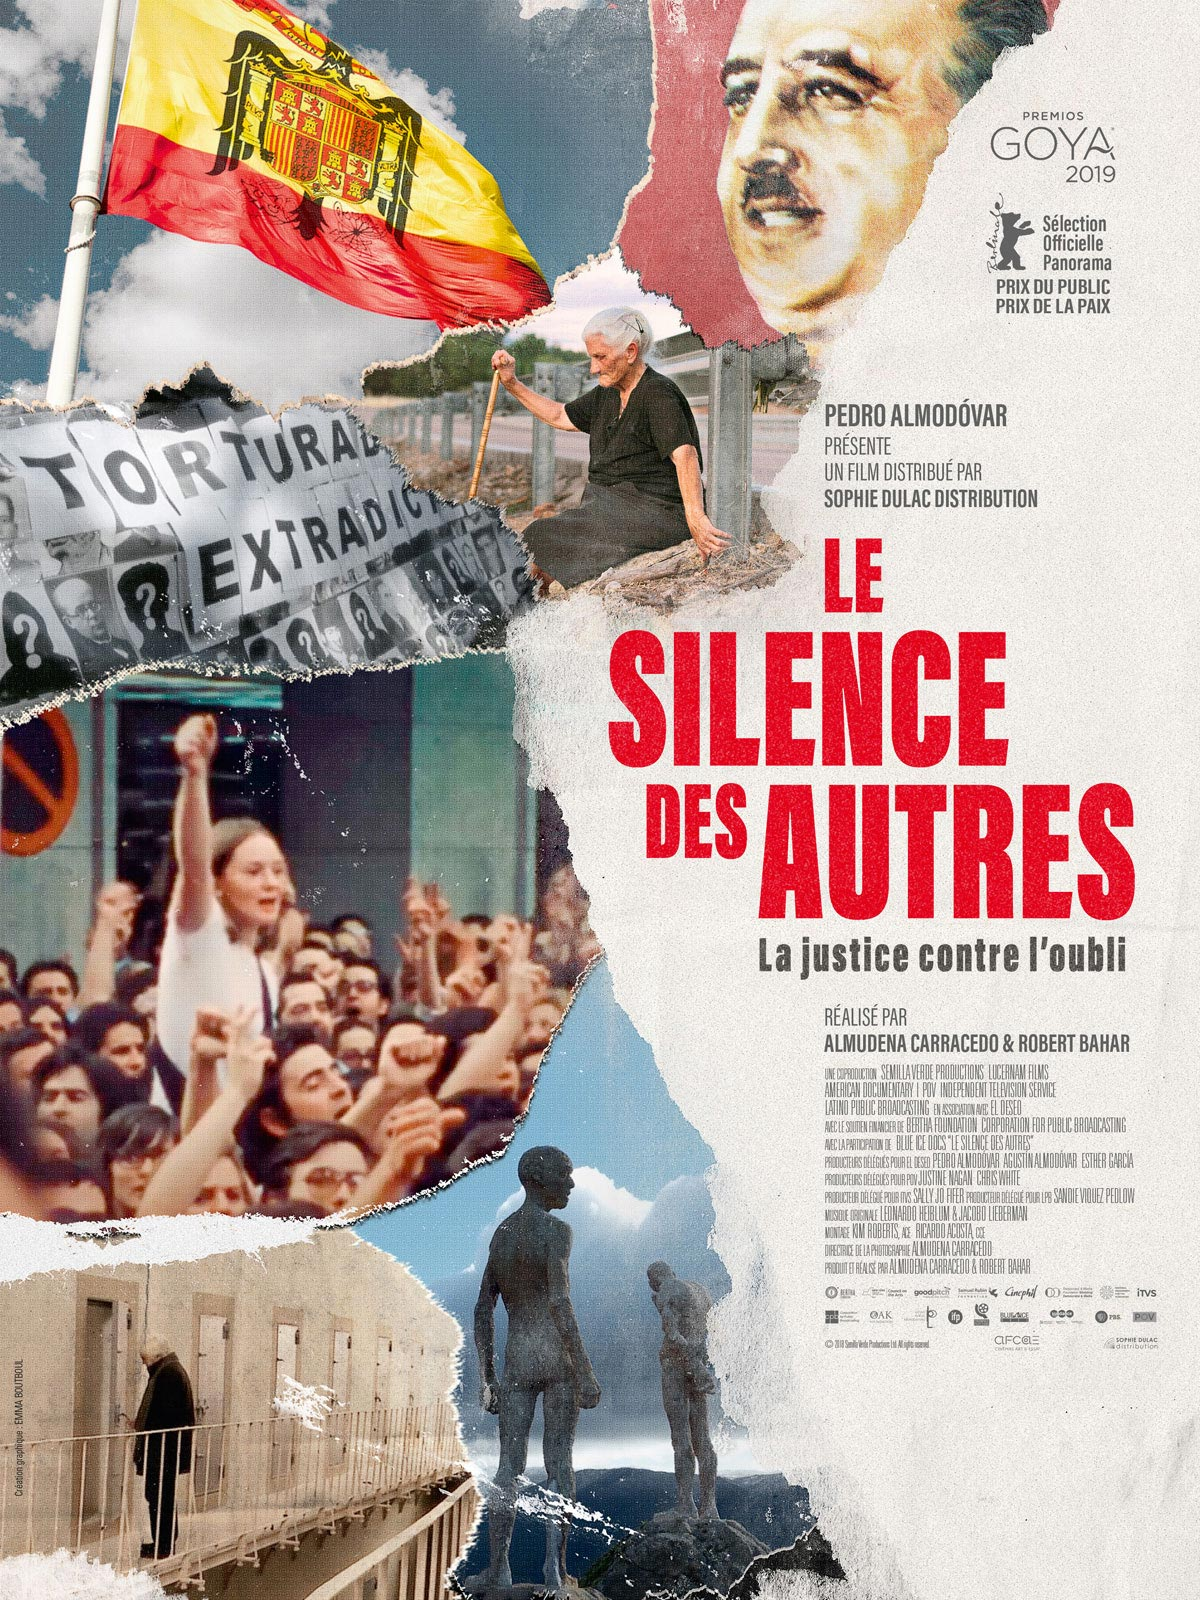 Affiche du film documentaire